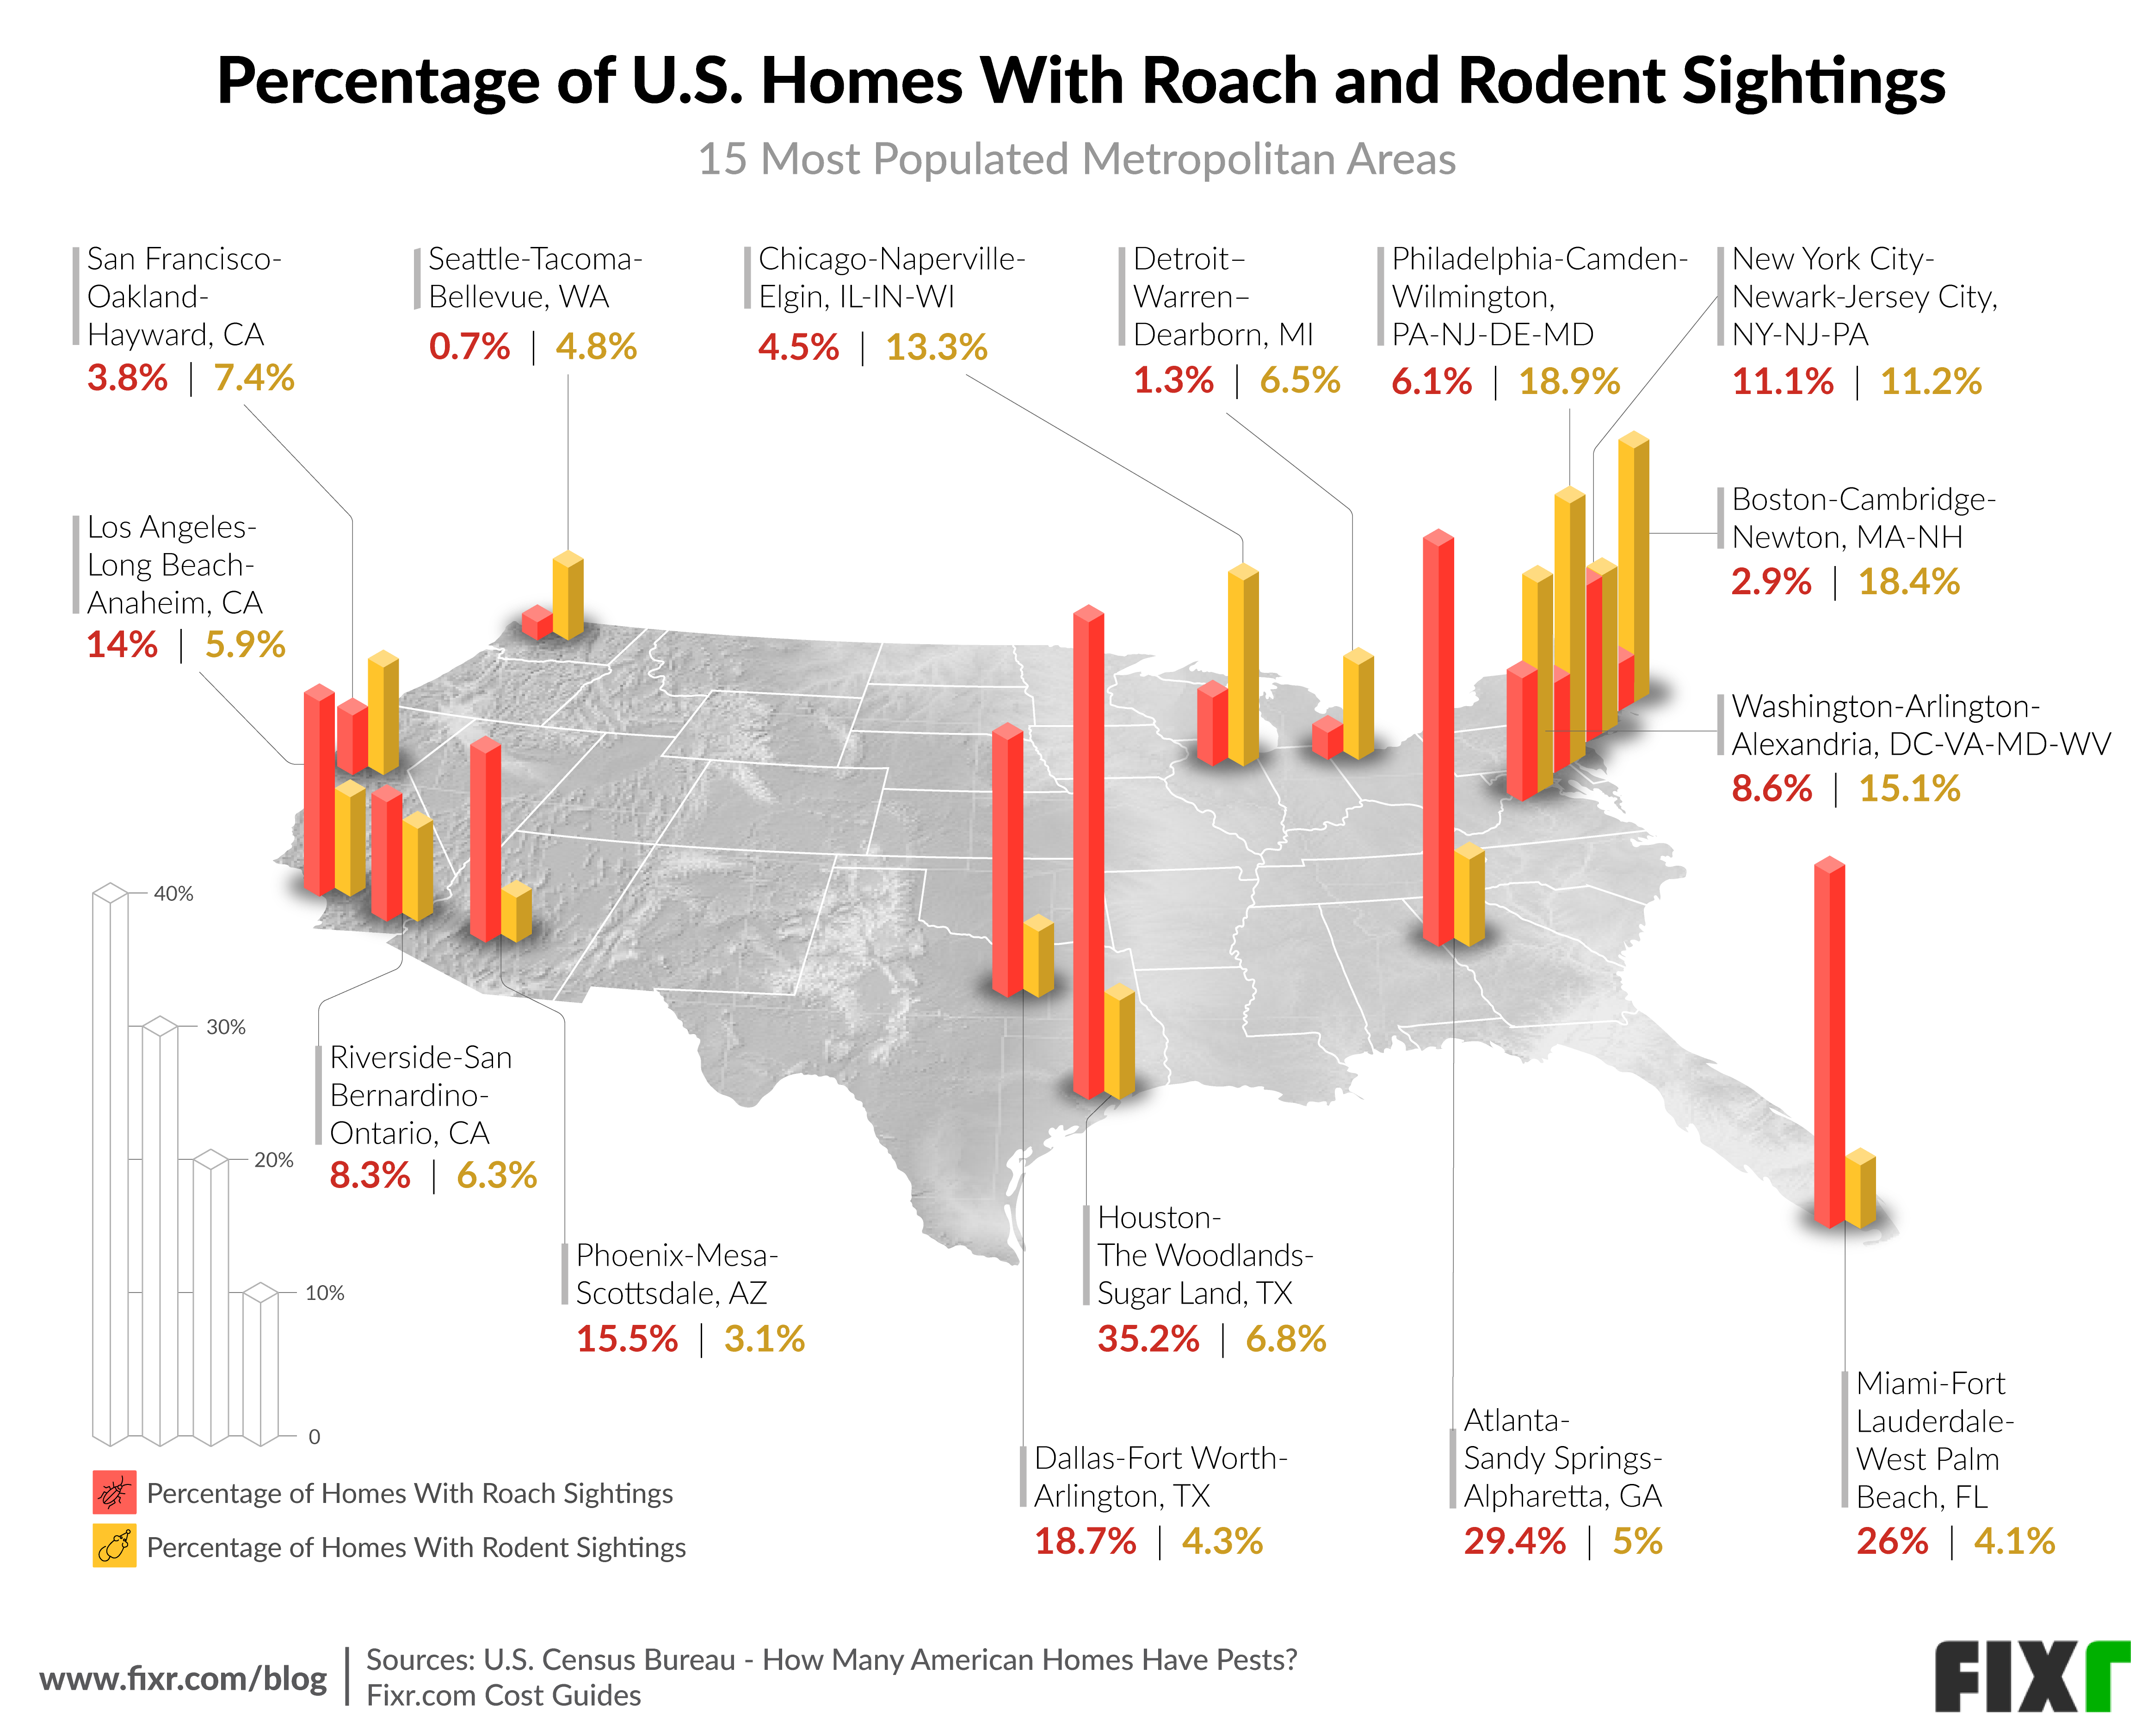 Percentage of U.S. Homes With Roach and Rodent Sightings - Pest Control Day